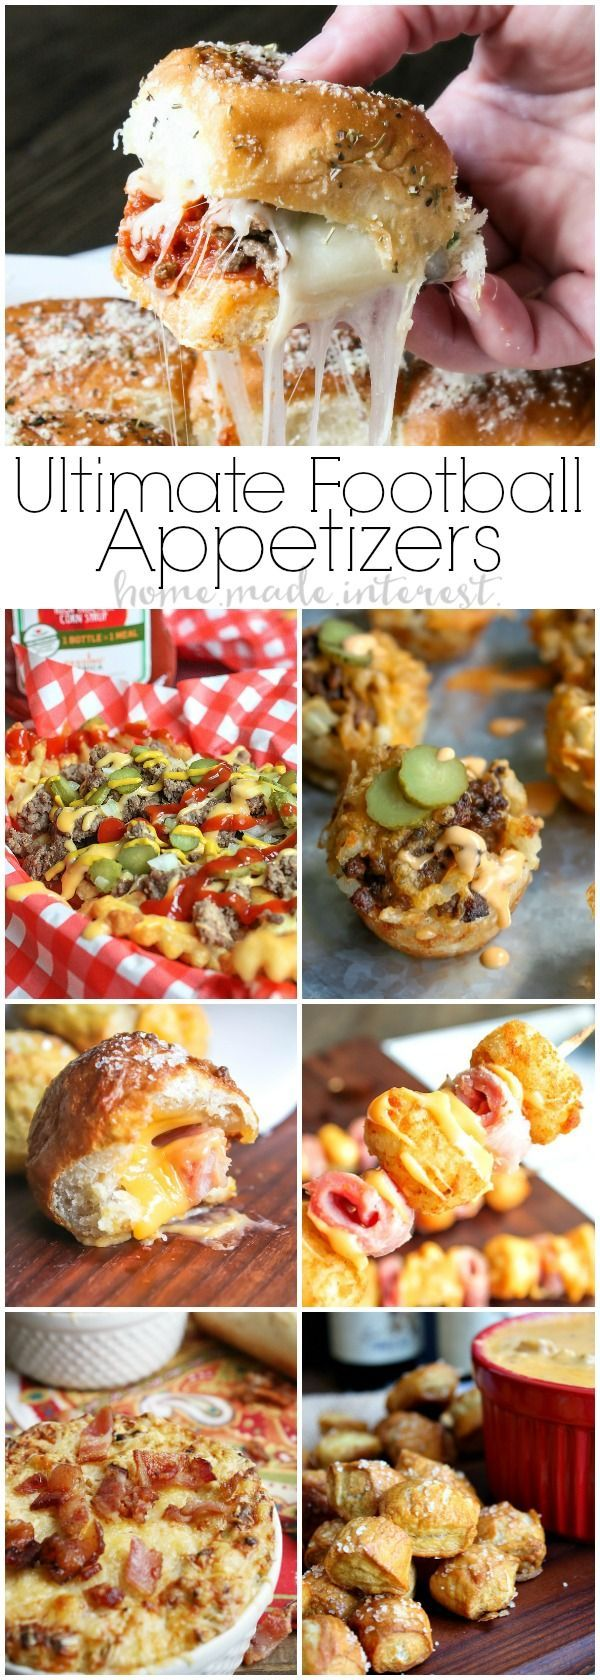 Easy Football Party Appetizers   Get ready for game day with these awesome easy football party appetizers. Whether you need some super bowl party recipes or you are just hosting a football party during the regular season you are going to need amazing appetizer recipes like easy slider recipes, tater tot appetizers, cheesy dip recipes. Host a great game day party with these easy game day appetizers!